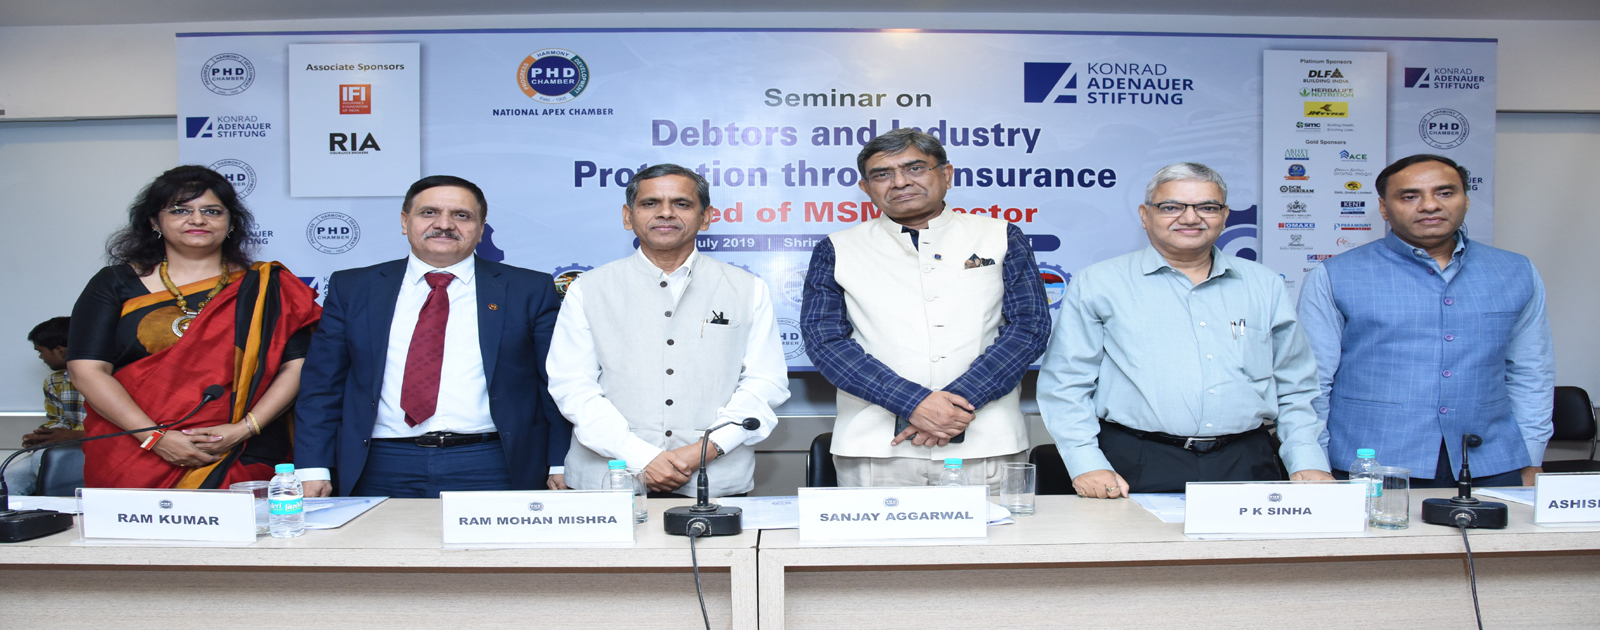 Seminar on Debtors and Industry Protection through Insurance-Need of MSME